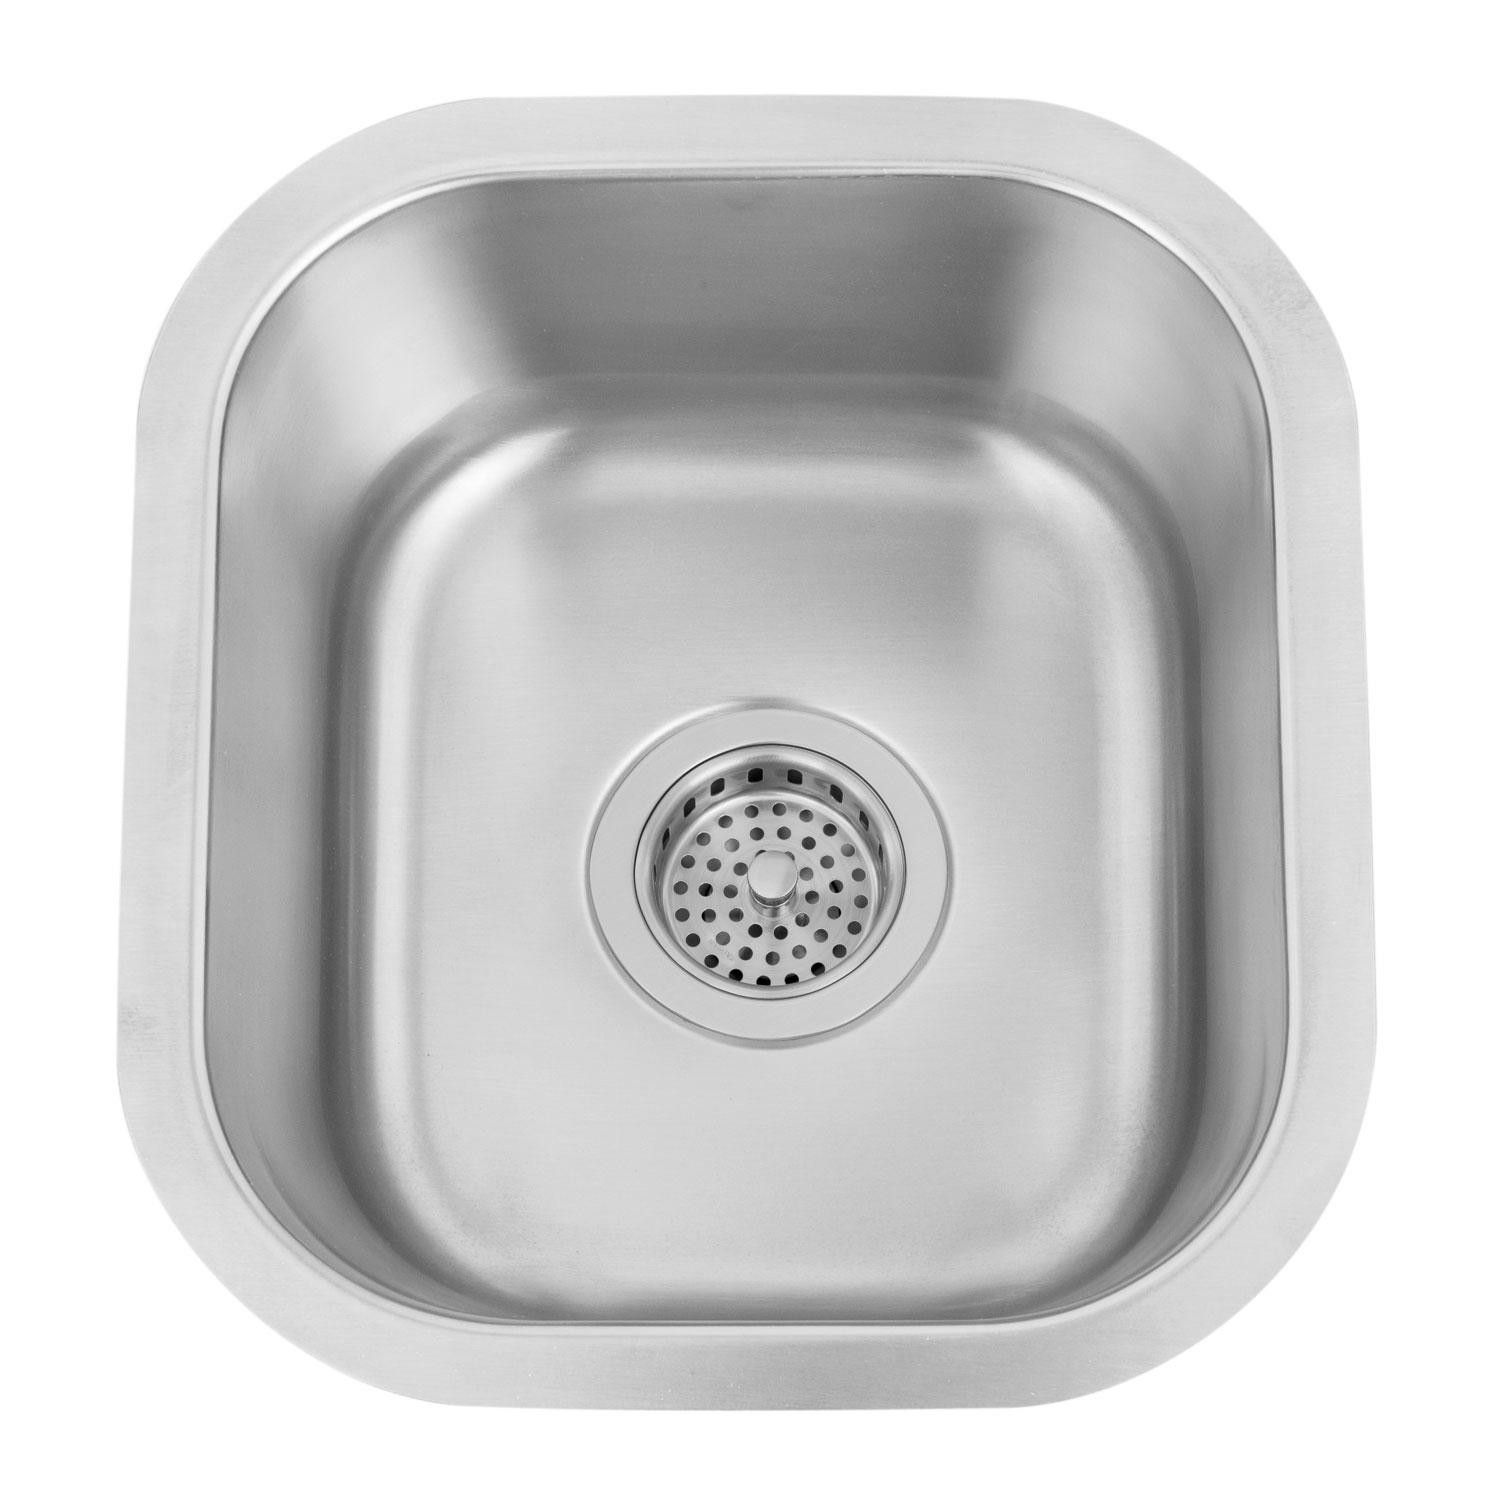 13 Infinite Small Square Stainless Steel Undermount Prep Sink